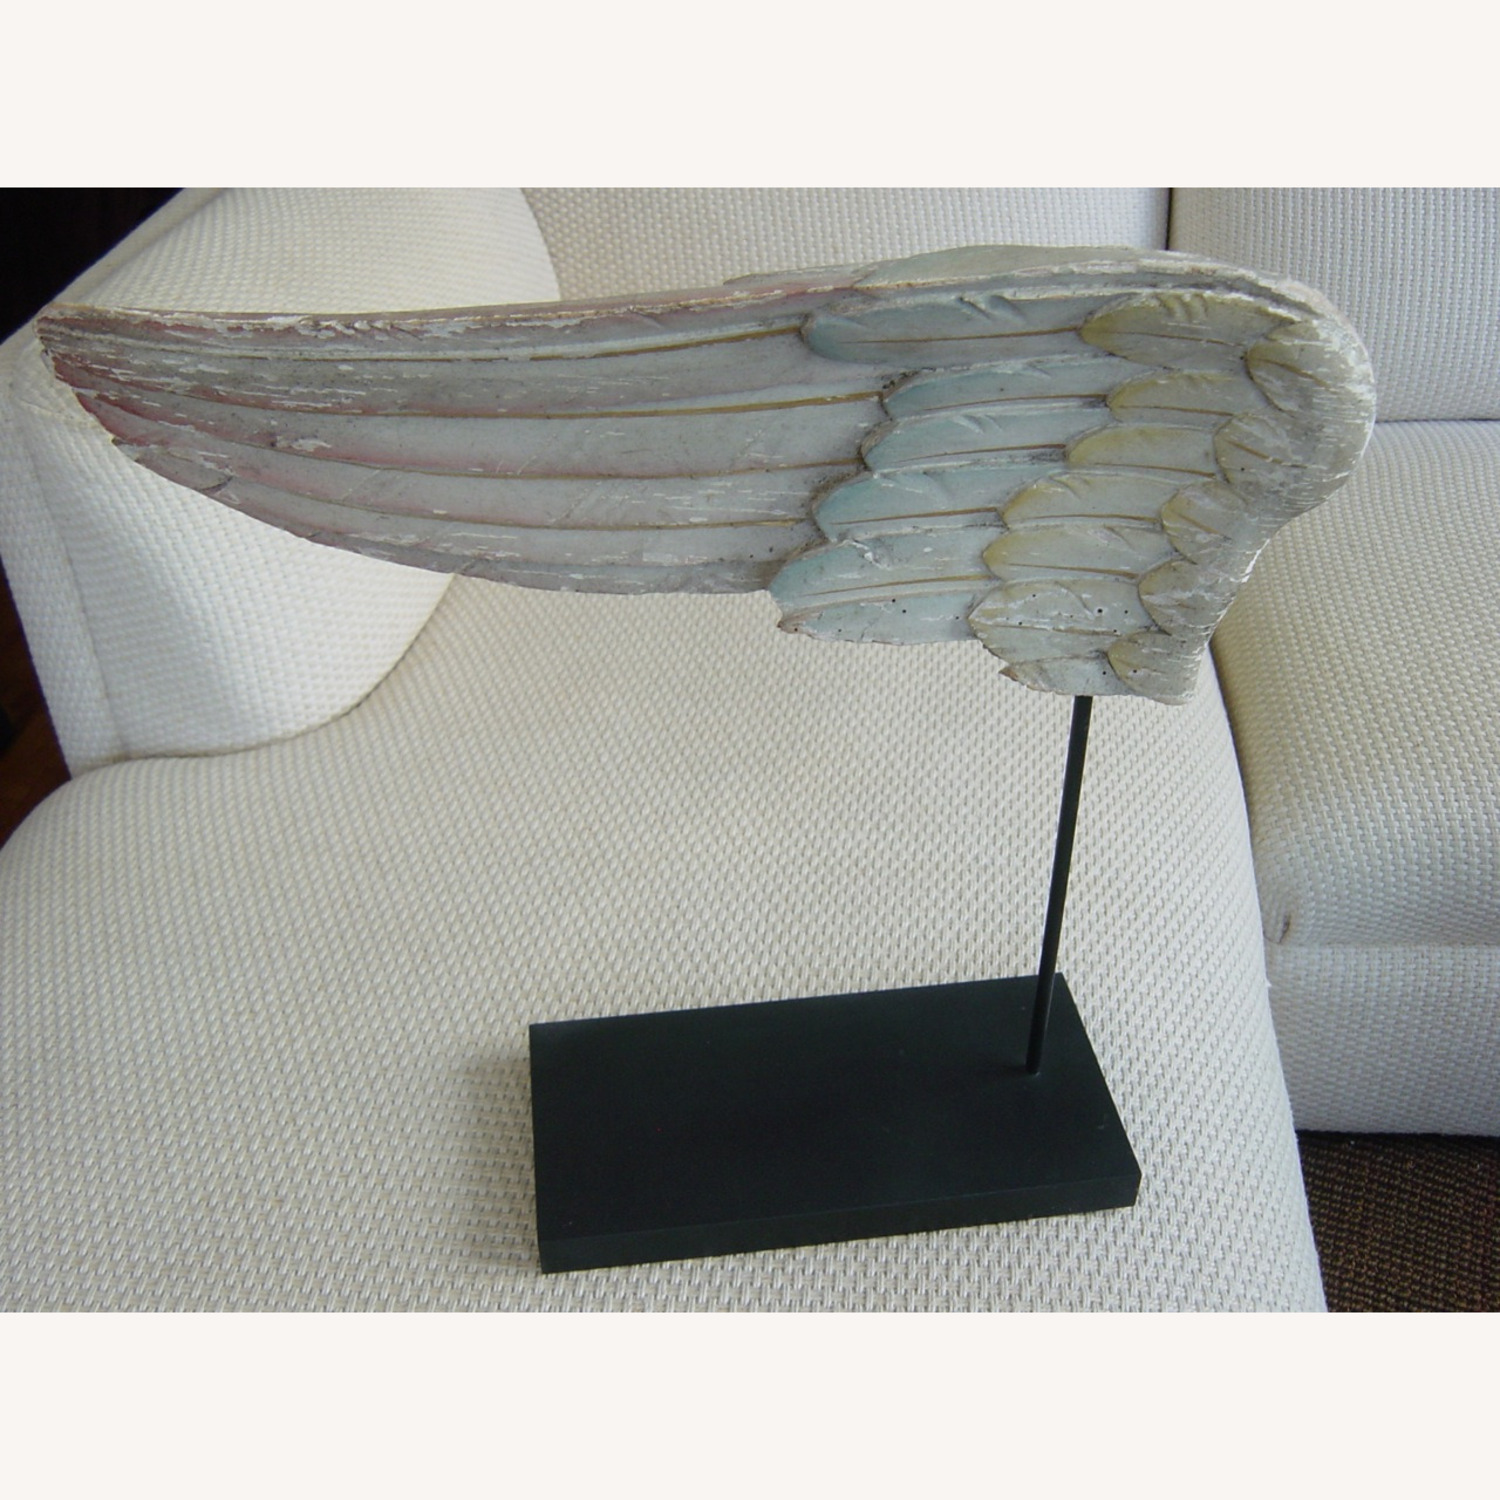 Polychromed Antique Angel Wing on Stand - image-1